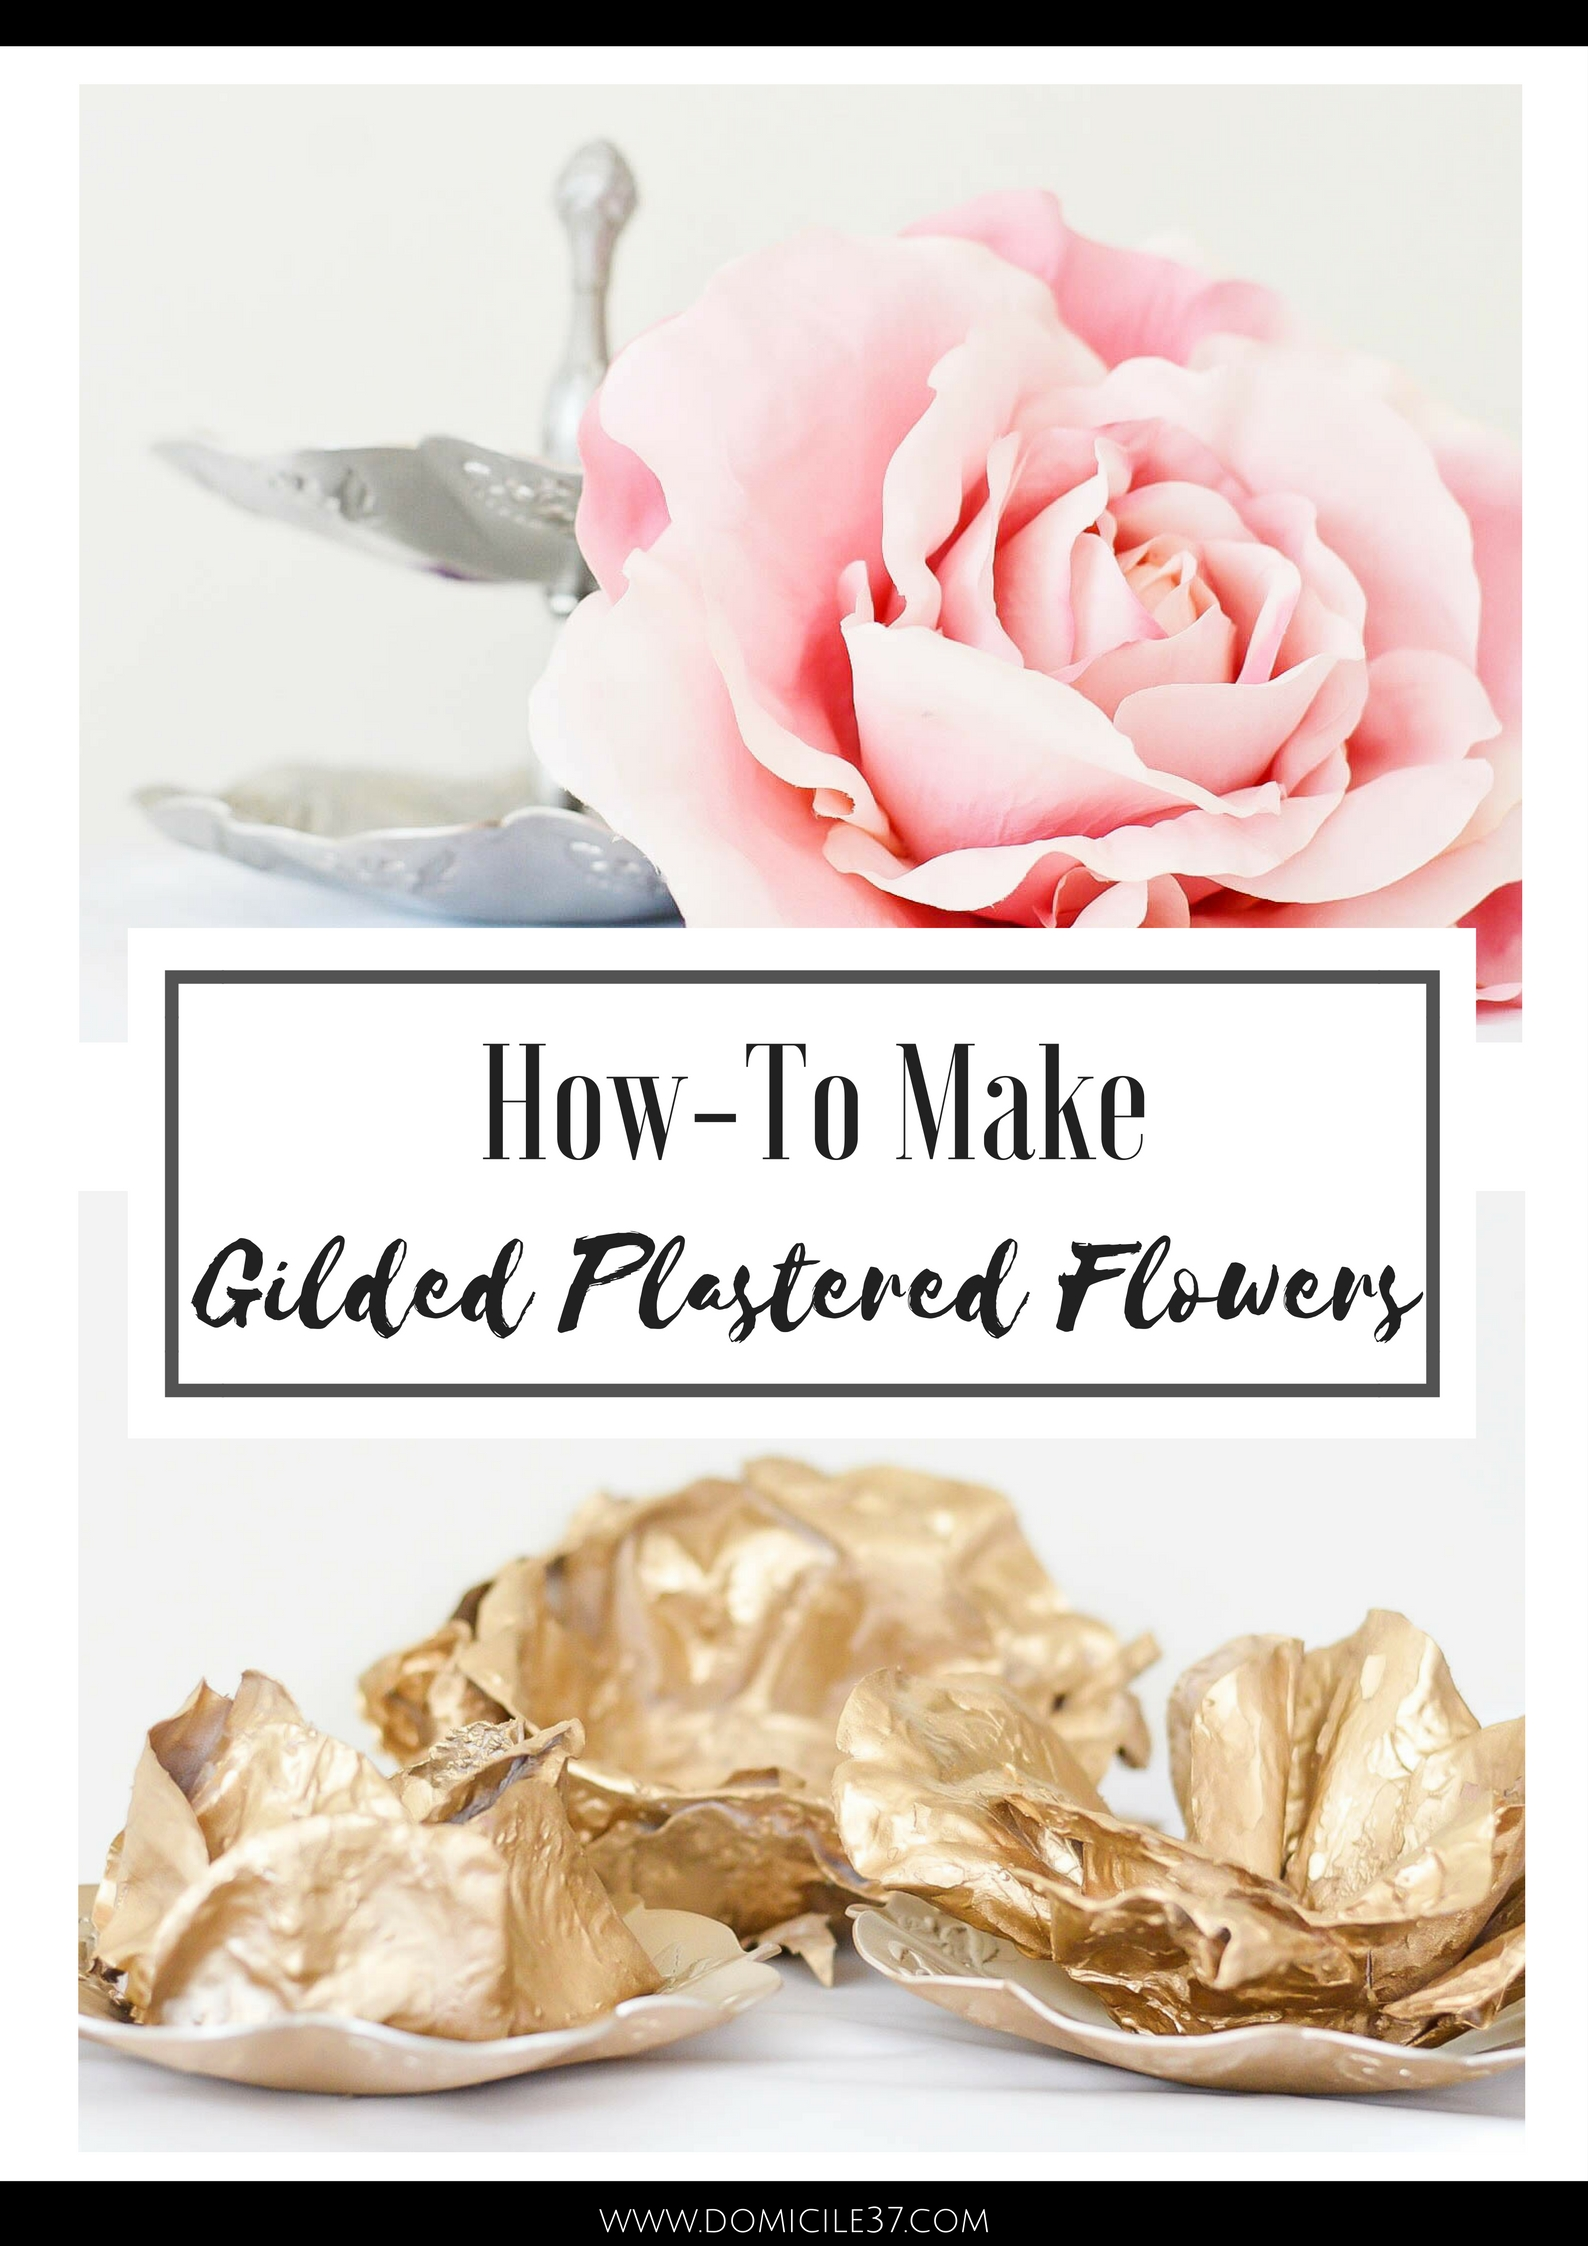 Swap it like it's hot | Home Made By Carmona | Before and After DIY's | Thrifted DIYs | Gilded Plastered Flowers | How-To make gilded flowers | plastered flowers